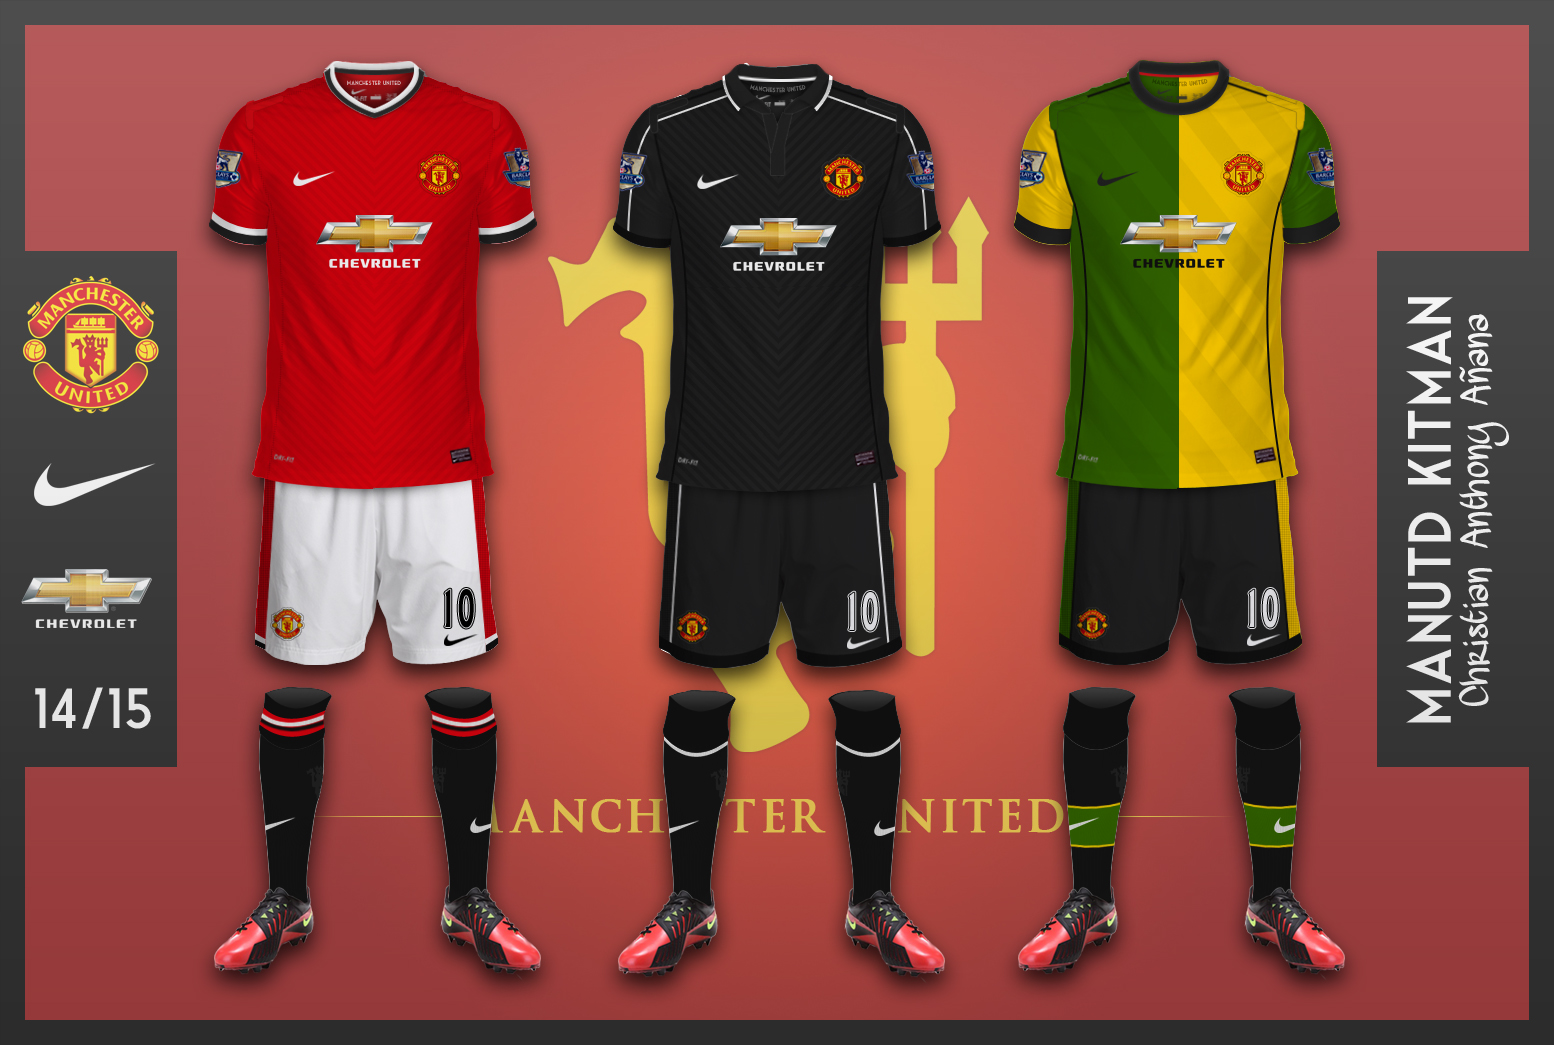 timeless design 25ae3 5d1ee Manchester United Kits - Chevrolet